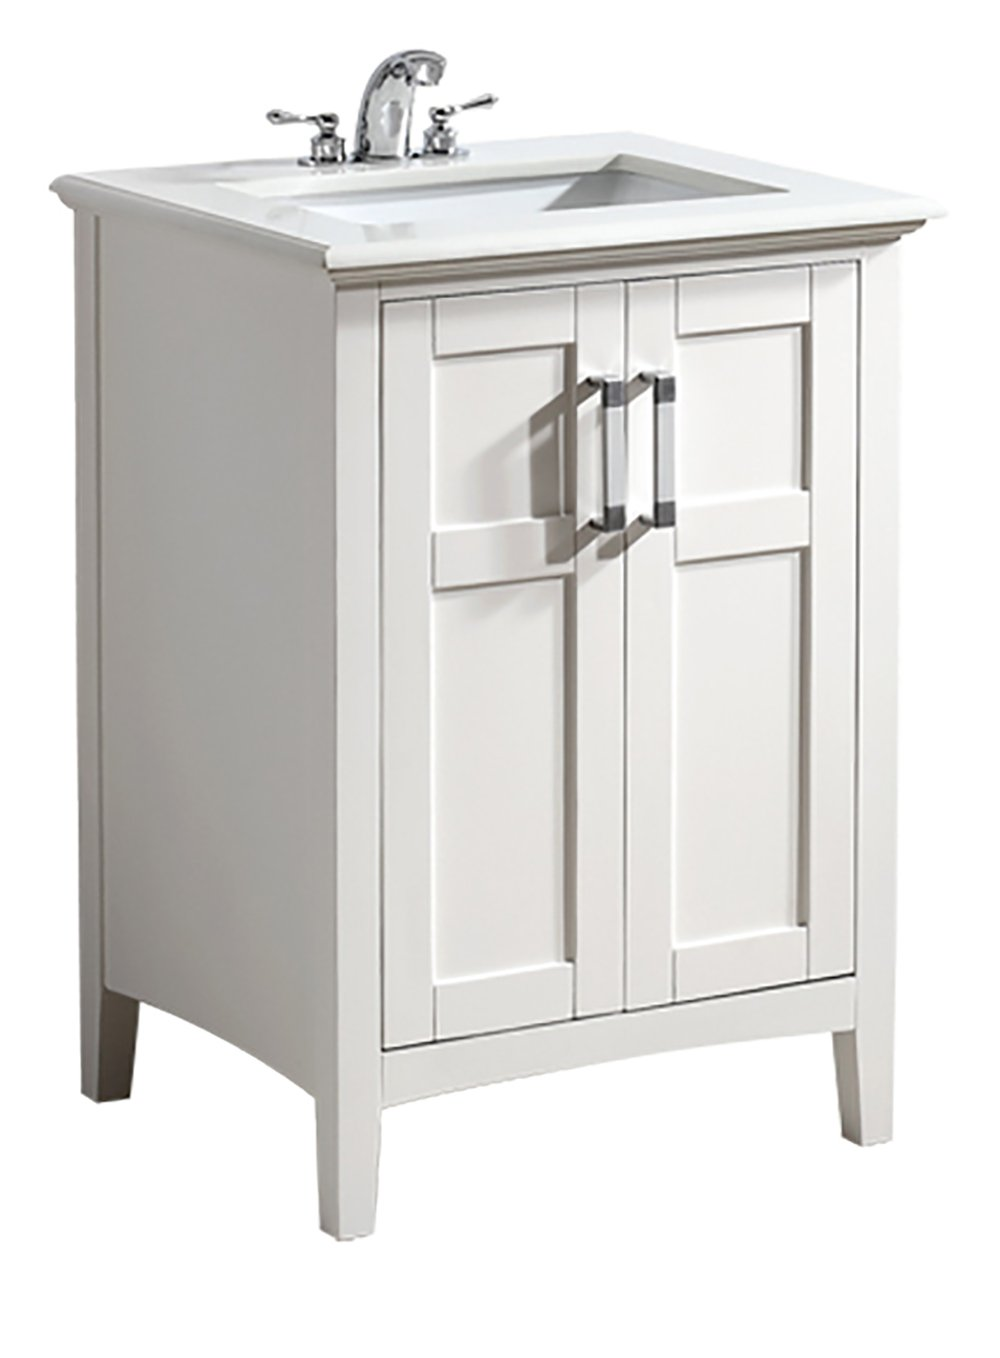 Simpli Home Winston Bath Vanity With Quartz Marble Top White - 24 inch bathroom vanity gray